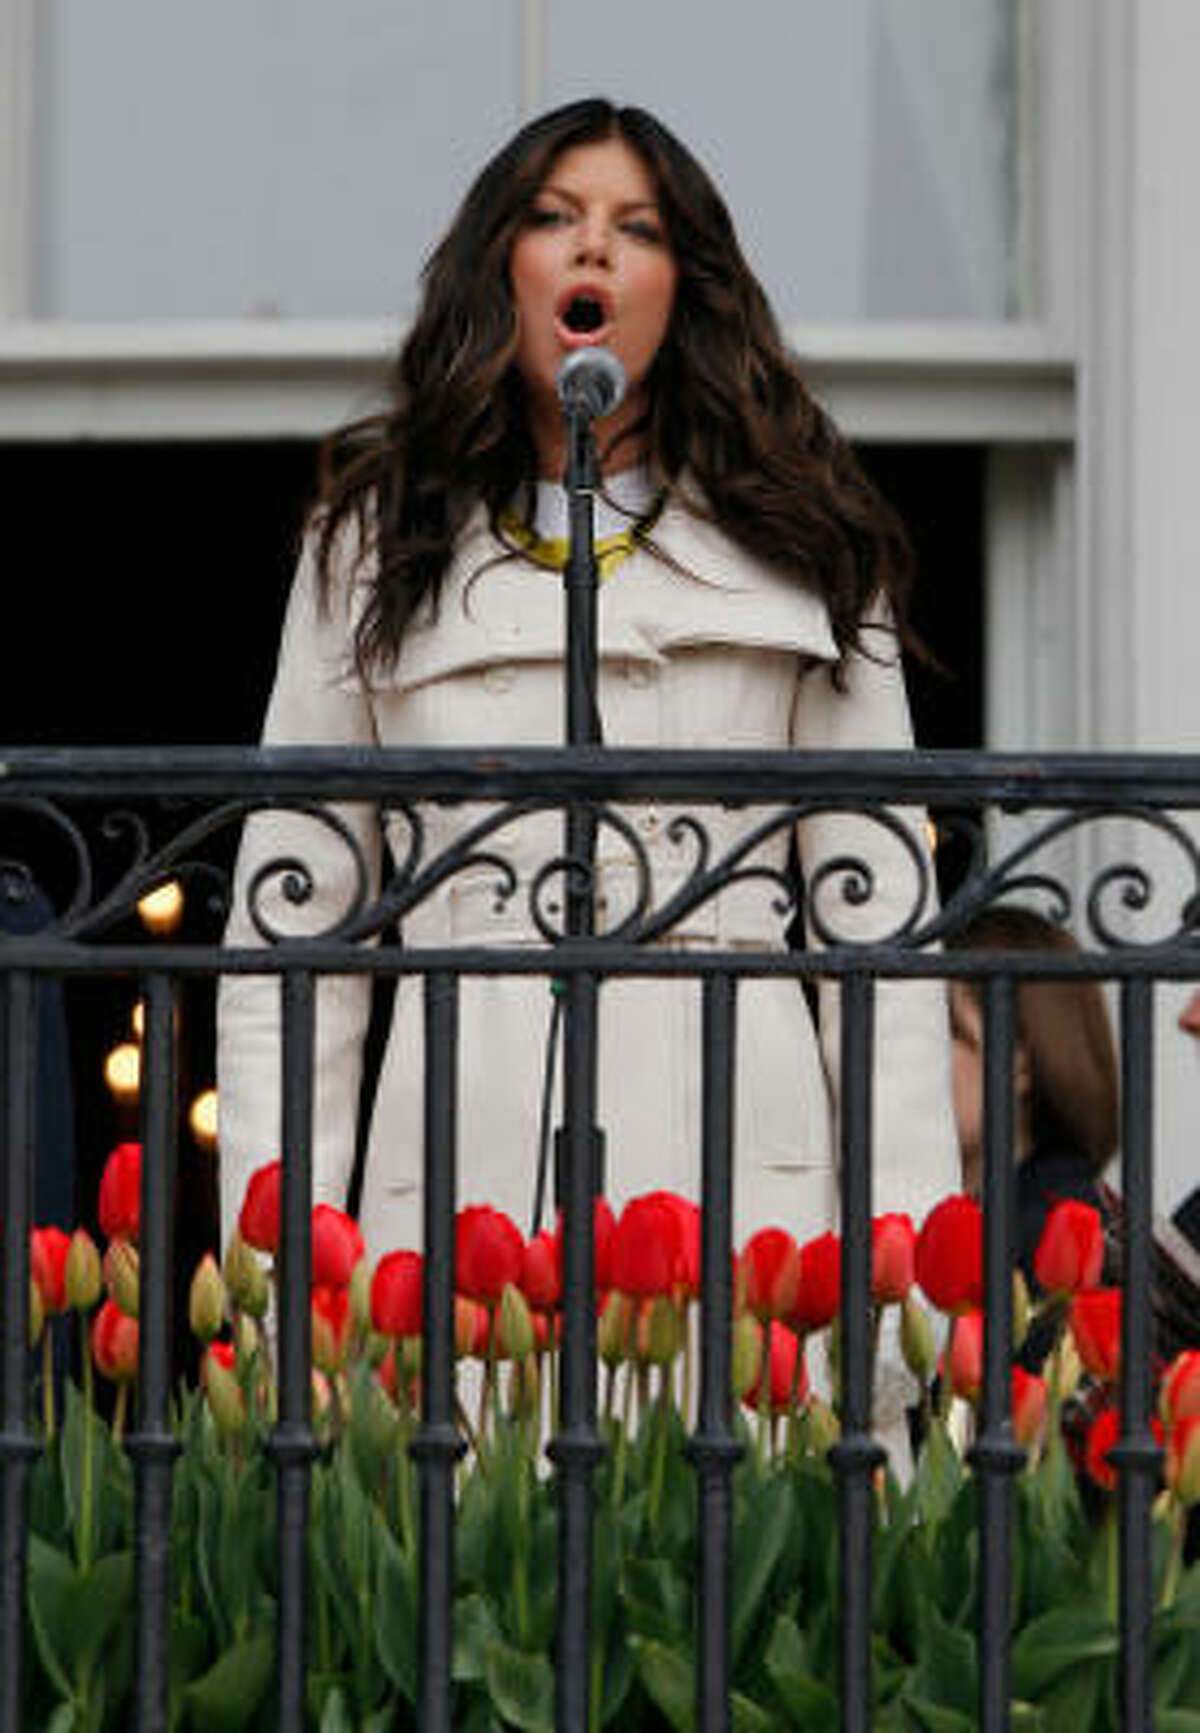 Singer Fergie sings the National Anthem as she takes part in the annual Easter Egg Roll at the White House in Washington.